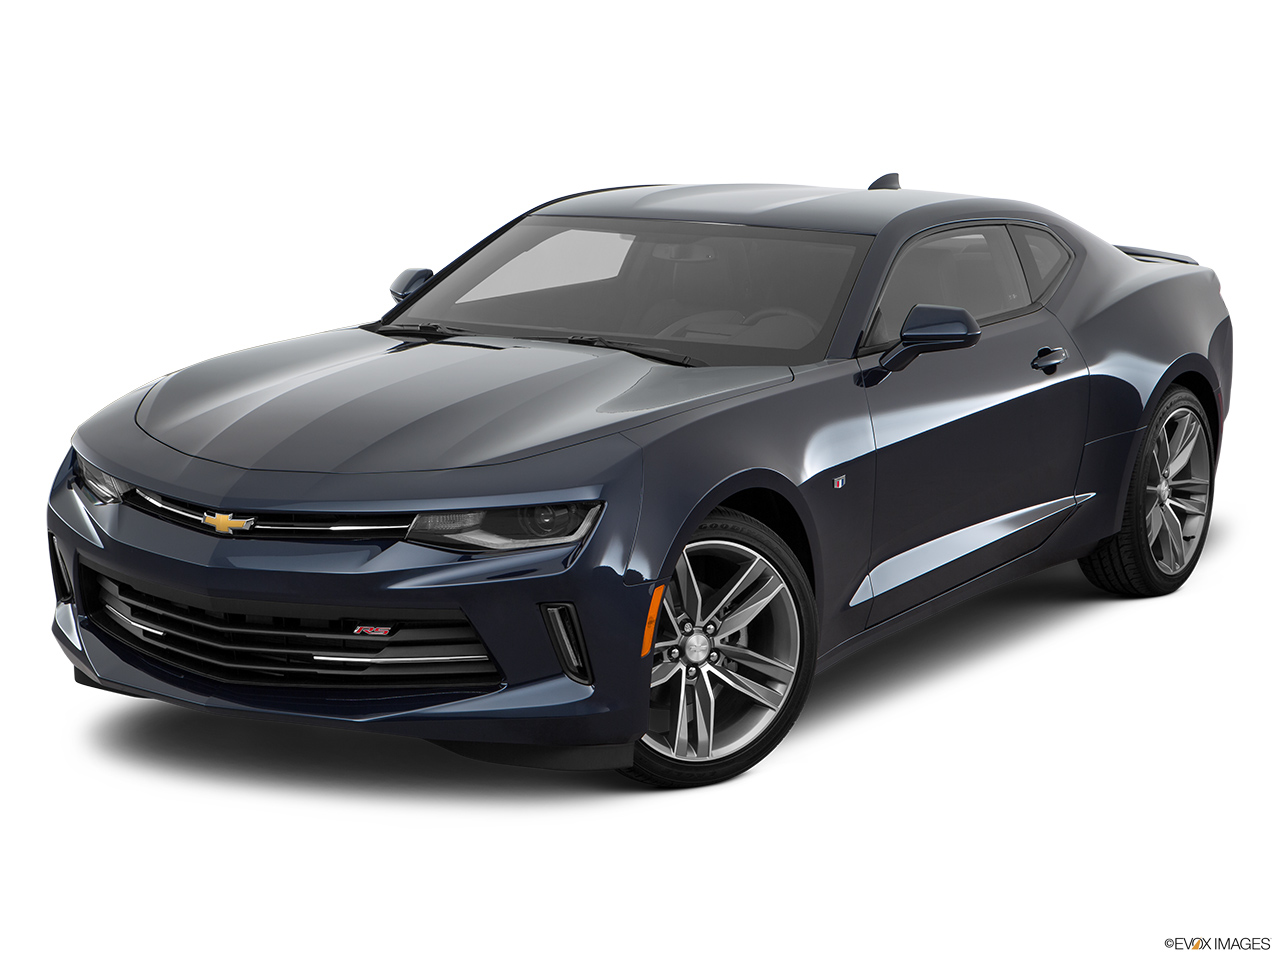 chevrolet camaro coupe 2016 6 2l zl1 in saudi arabia new car prices specs reviews photos. Black Bedroom Furniture Sets. Home Design Ideas